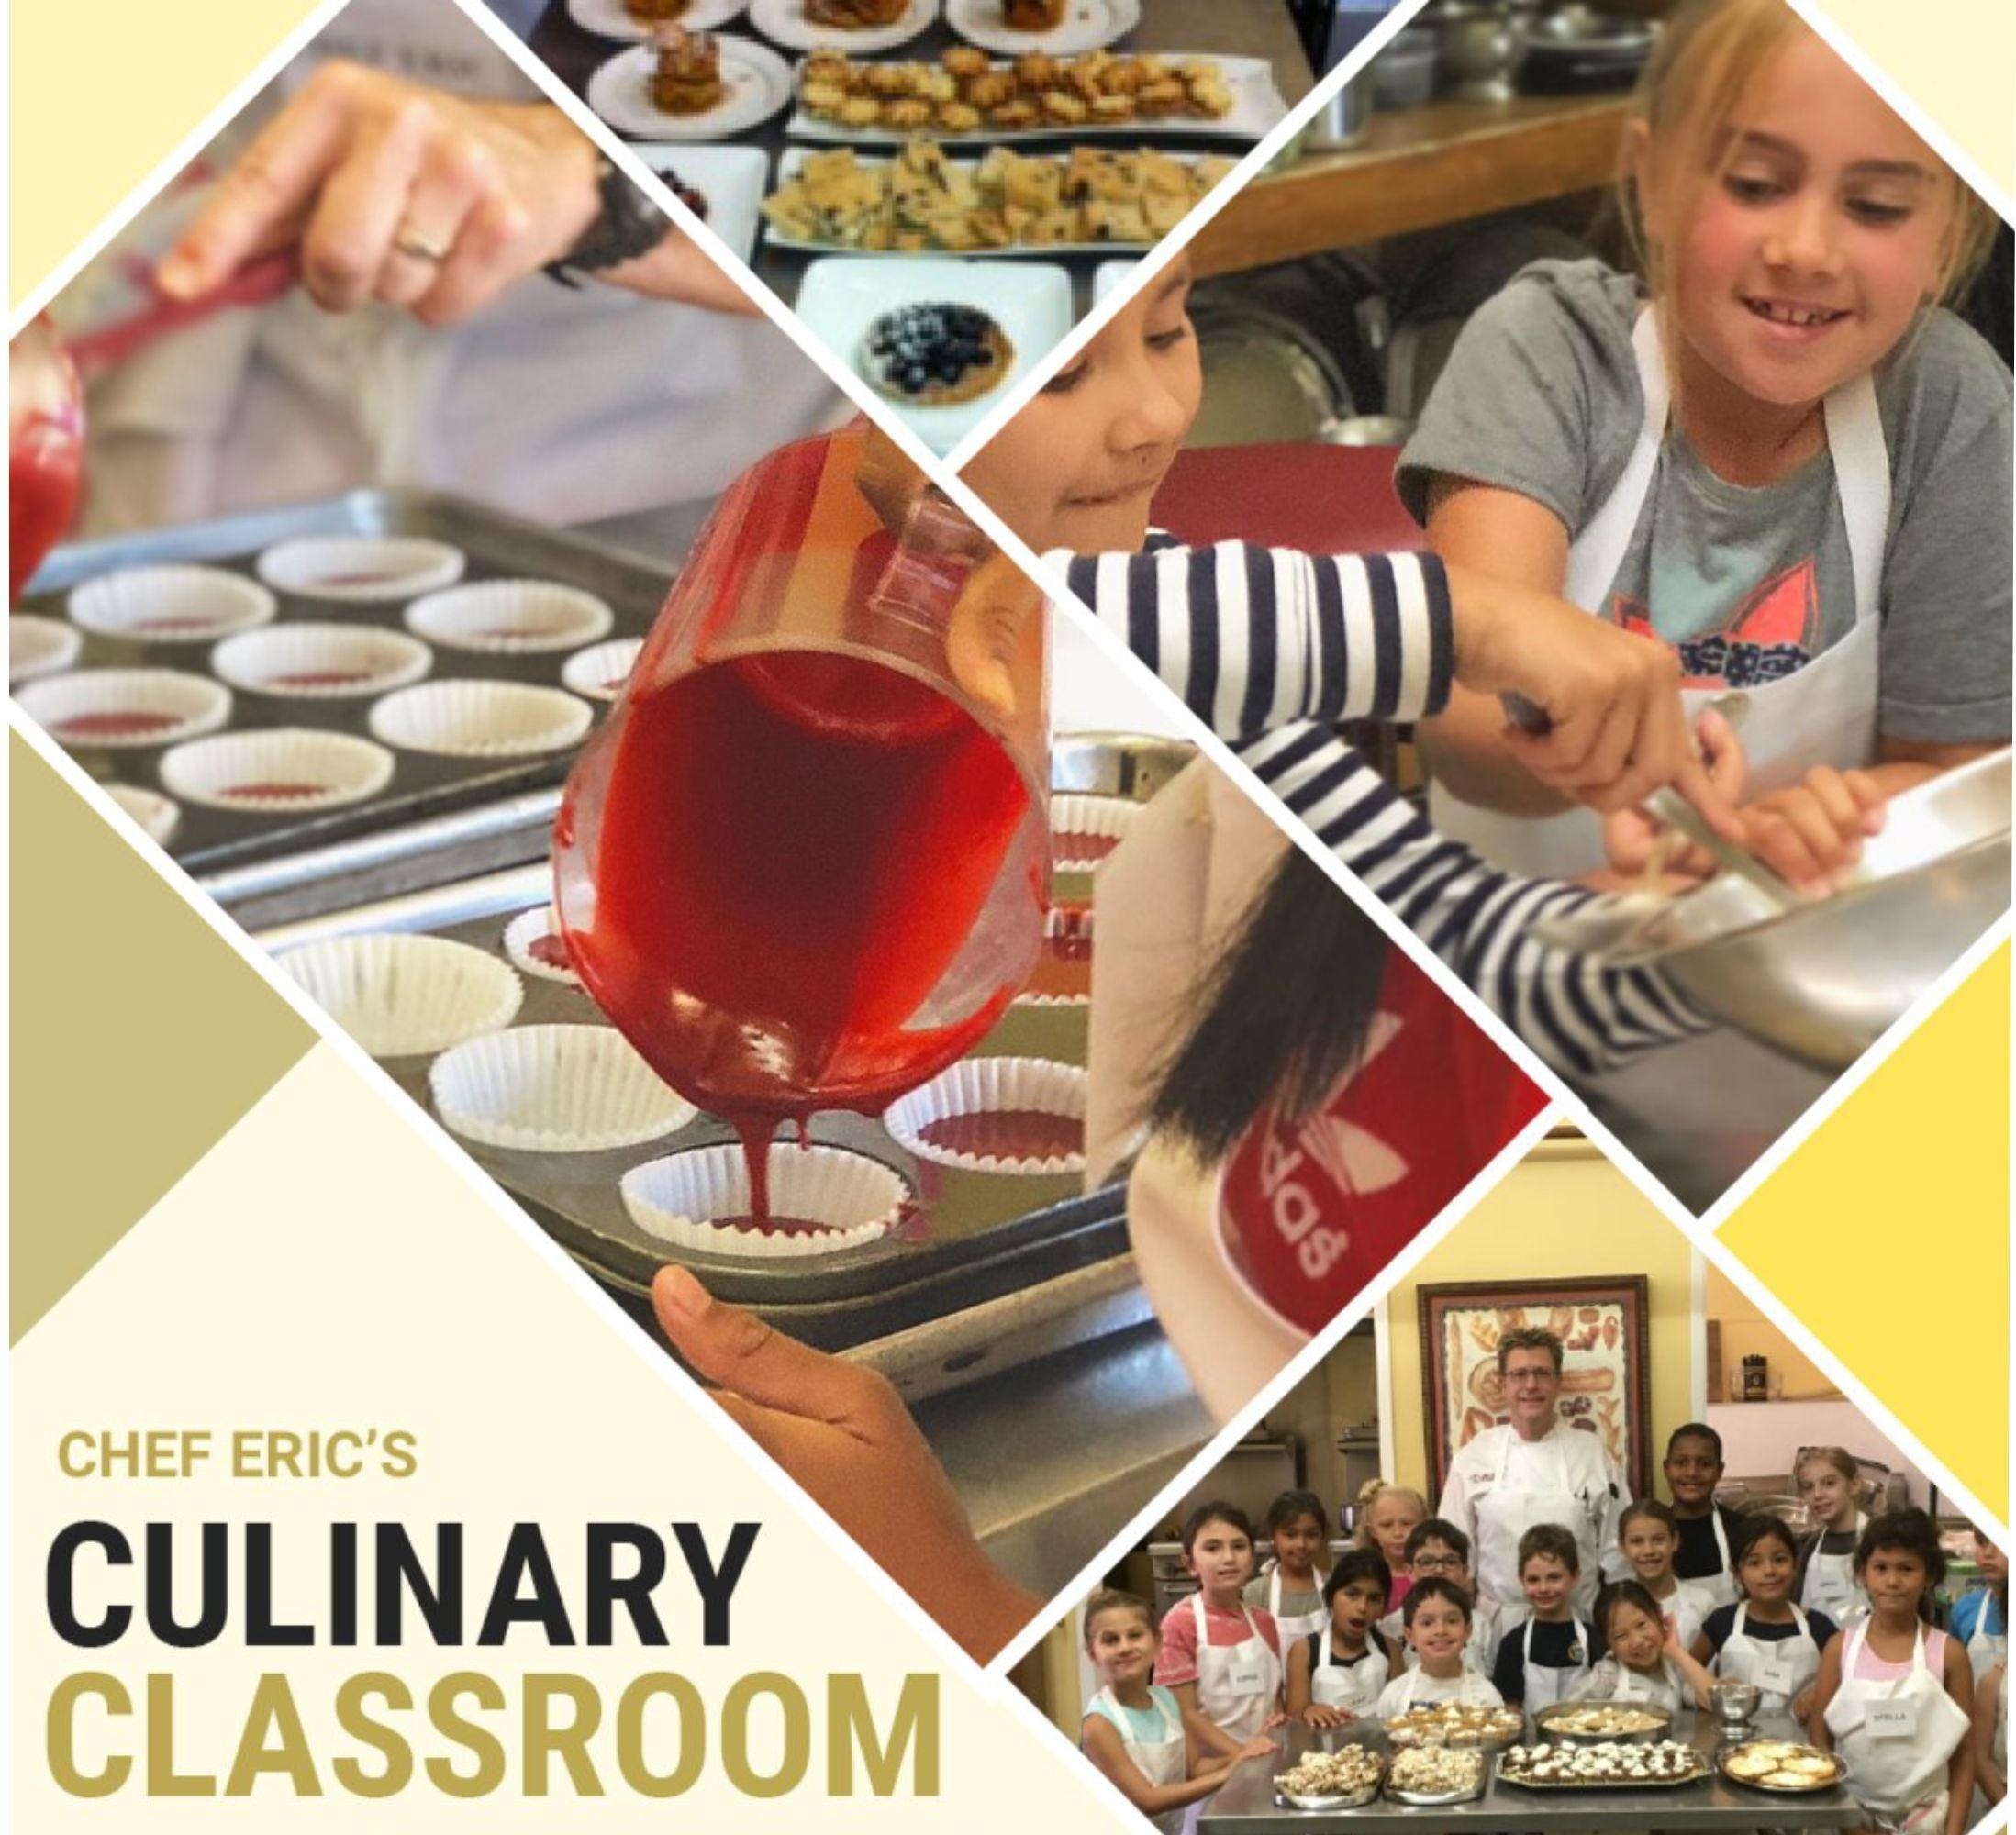 Kid's Summer Cooking and Baking Camps - Baking and Pastry - August 12-15